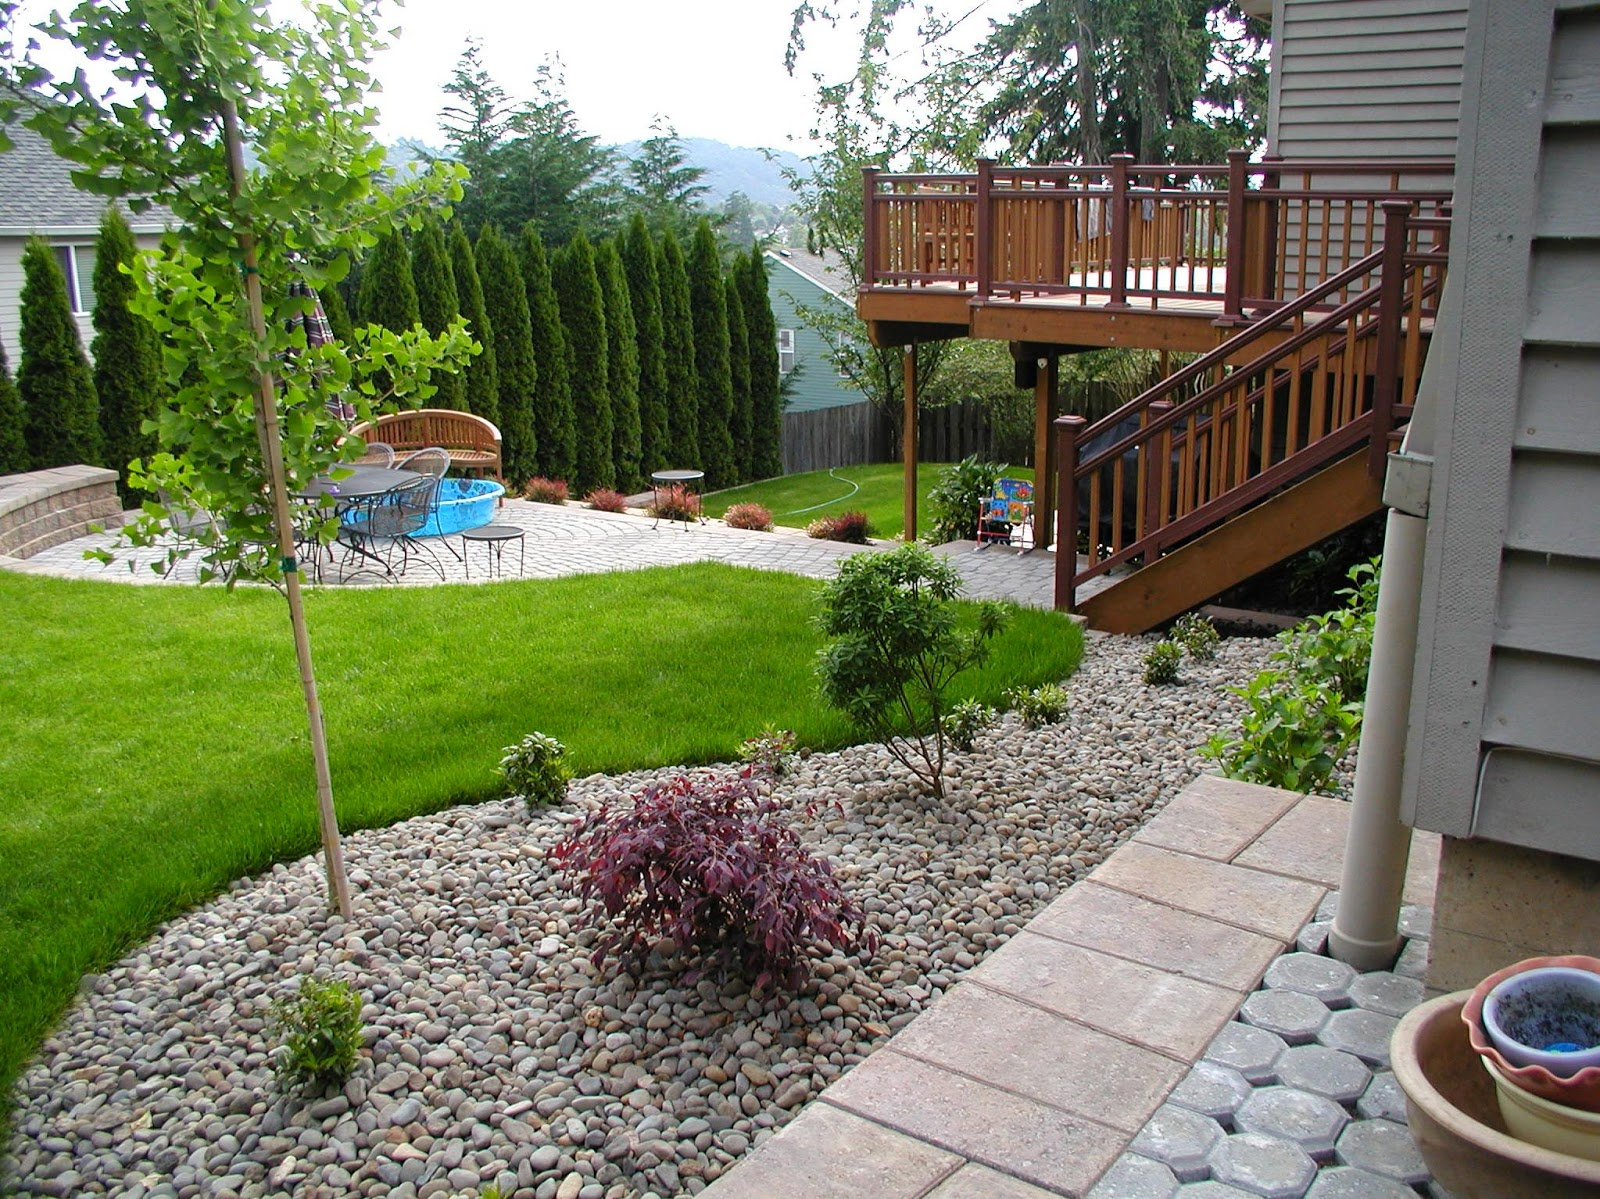 Sloped Backyard Landscaping Ideas Kumpulan Info Penting Dan Bermanfaat within Sloped Backyard Deck Ideas